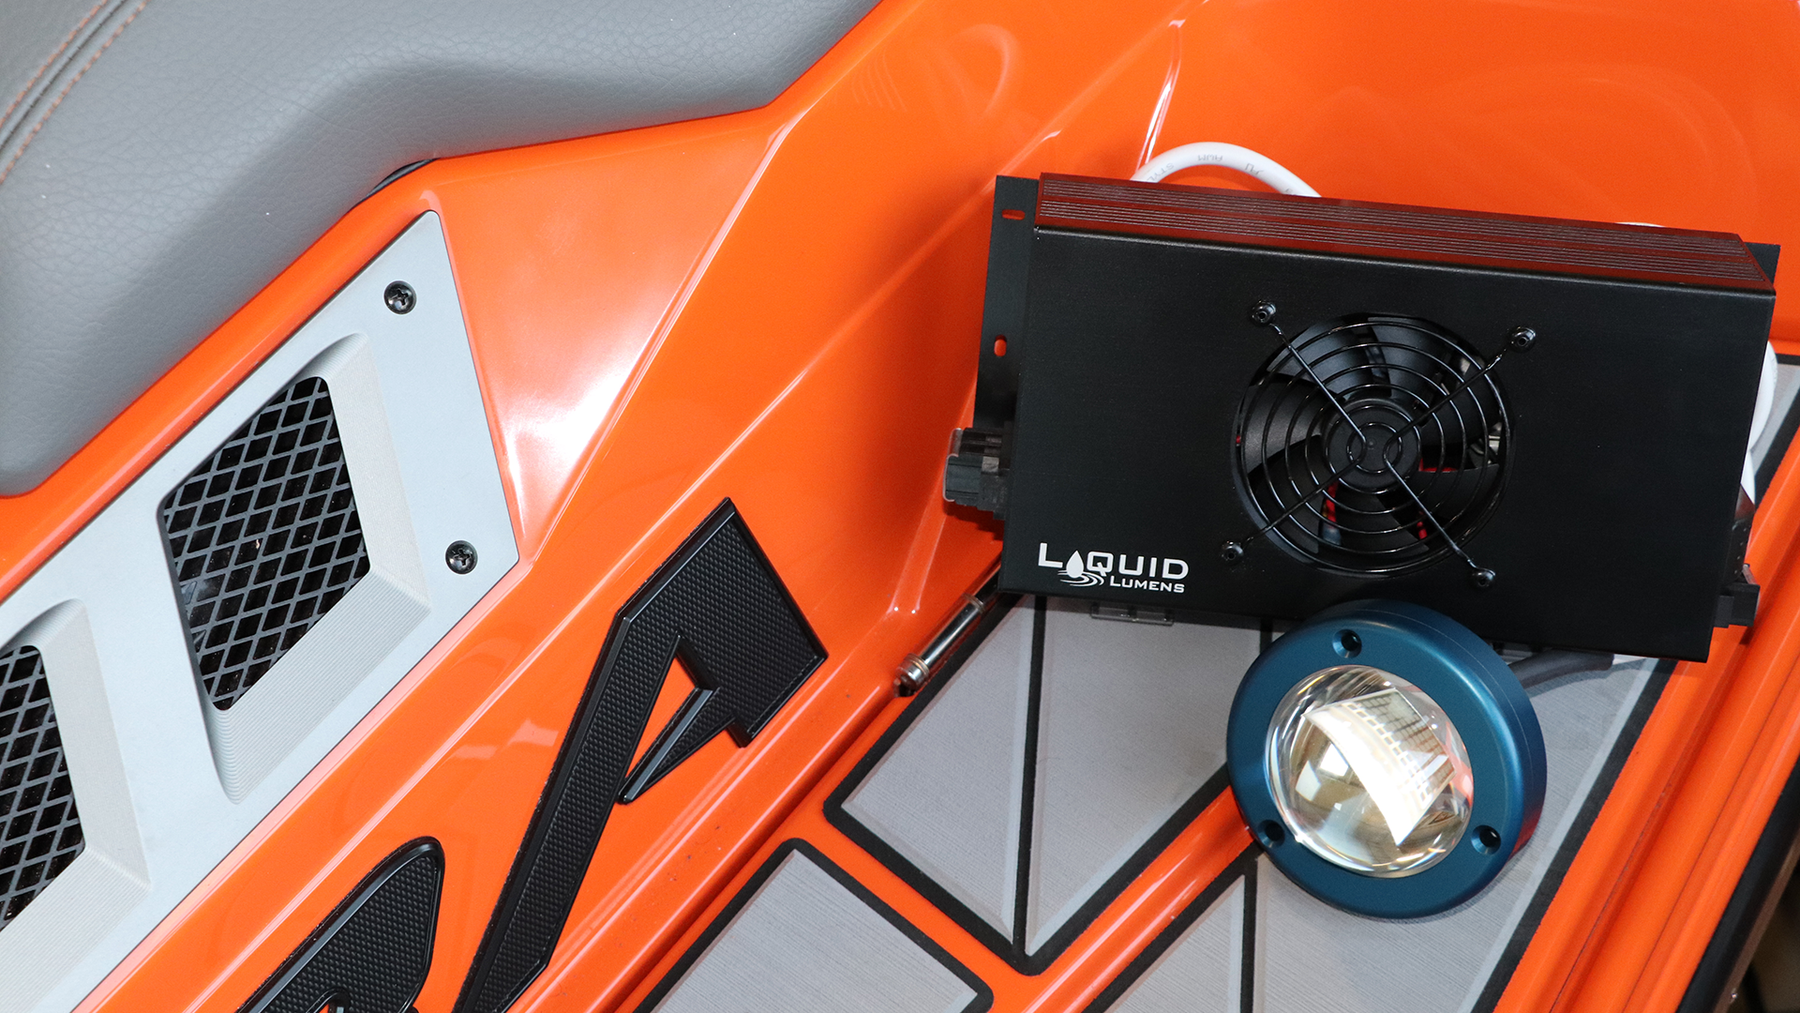 Liquid Lumens Launches Exclusive Partnership With Marine Products To Change The Marine Lighting Game